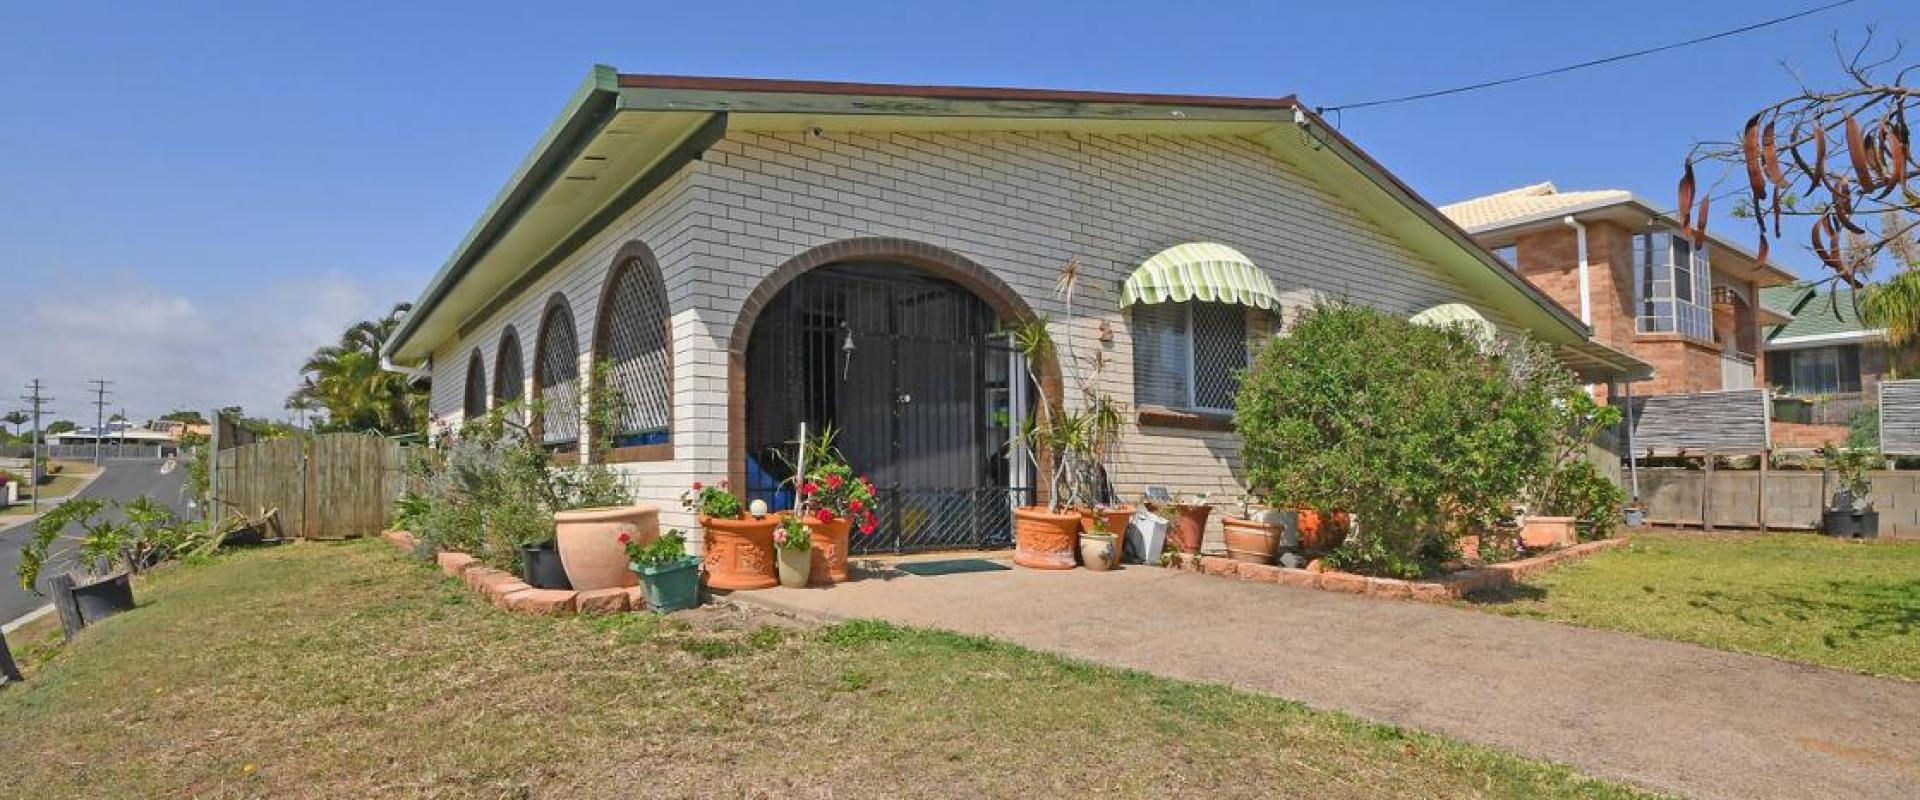 CENTRAL LOCATION CLOSE TO THE STOCKLAND SHOPPING CENTRE, SWIMMING POOL, 6 SOLAR PANELS, WORKSHOP SHED, VEHICLE PORT IDEAL FIRST TIME BUY OR INVESTMENT